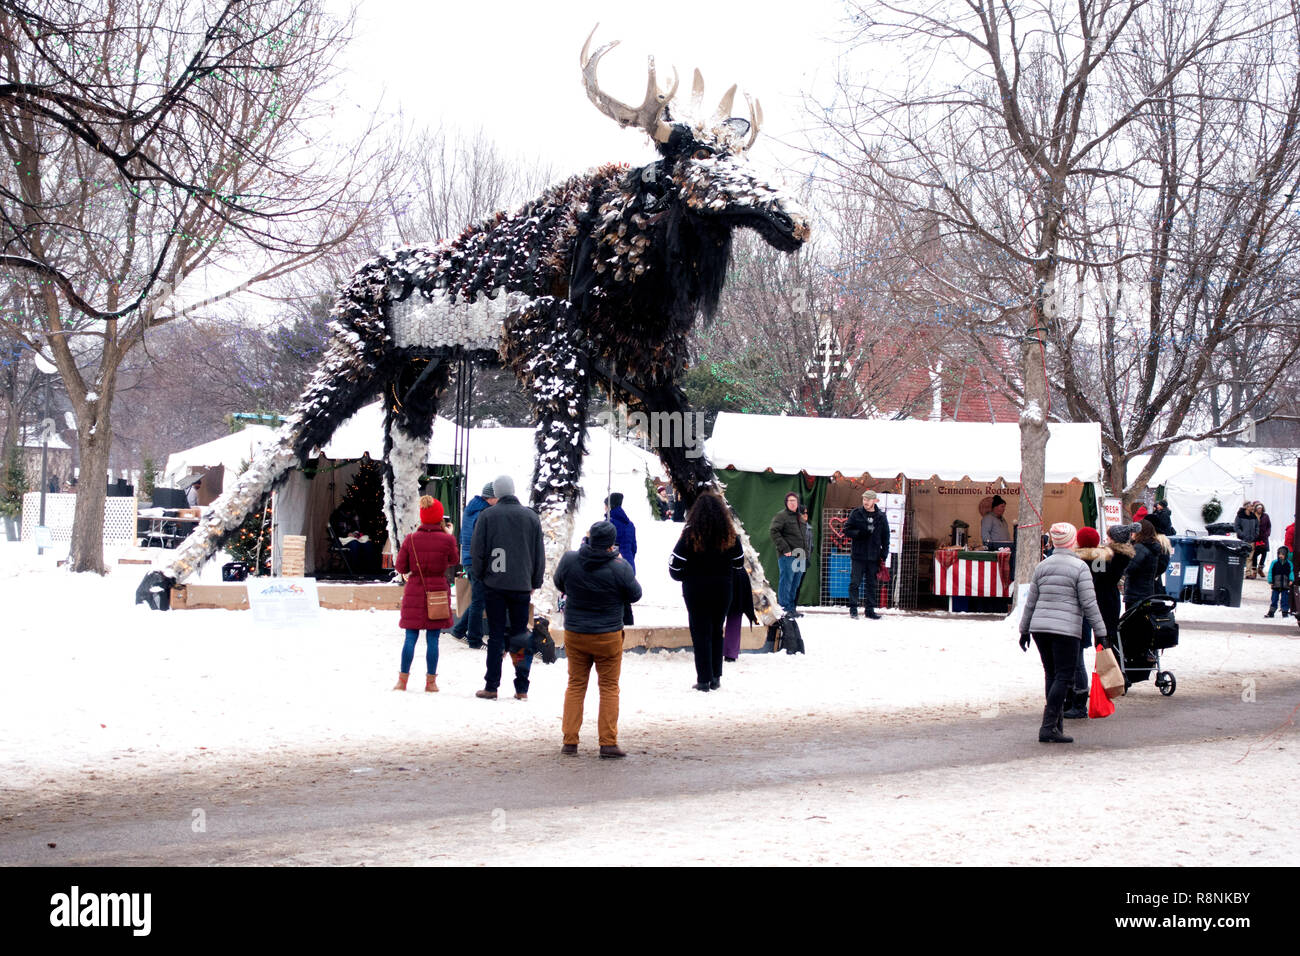 Moose art statue made from 90% recycled materials standing over the crowd at Holidazzle Winter Event in Loring Park. Minneapolis Minnesota MN USA - Stock Image